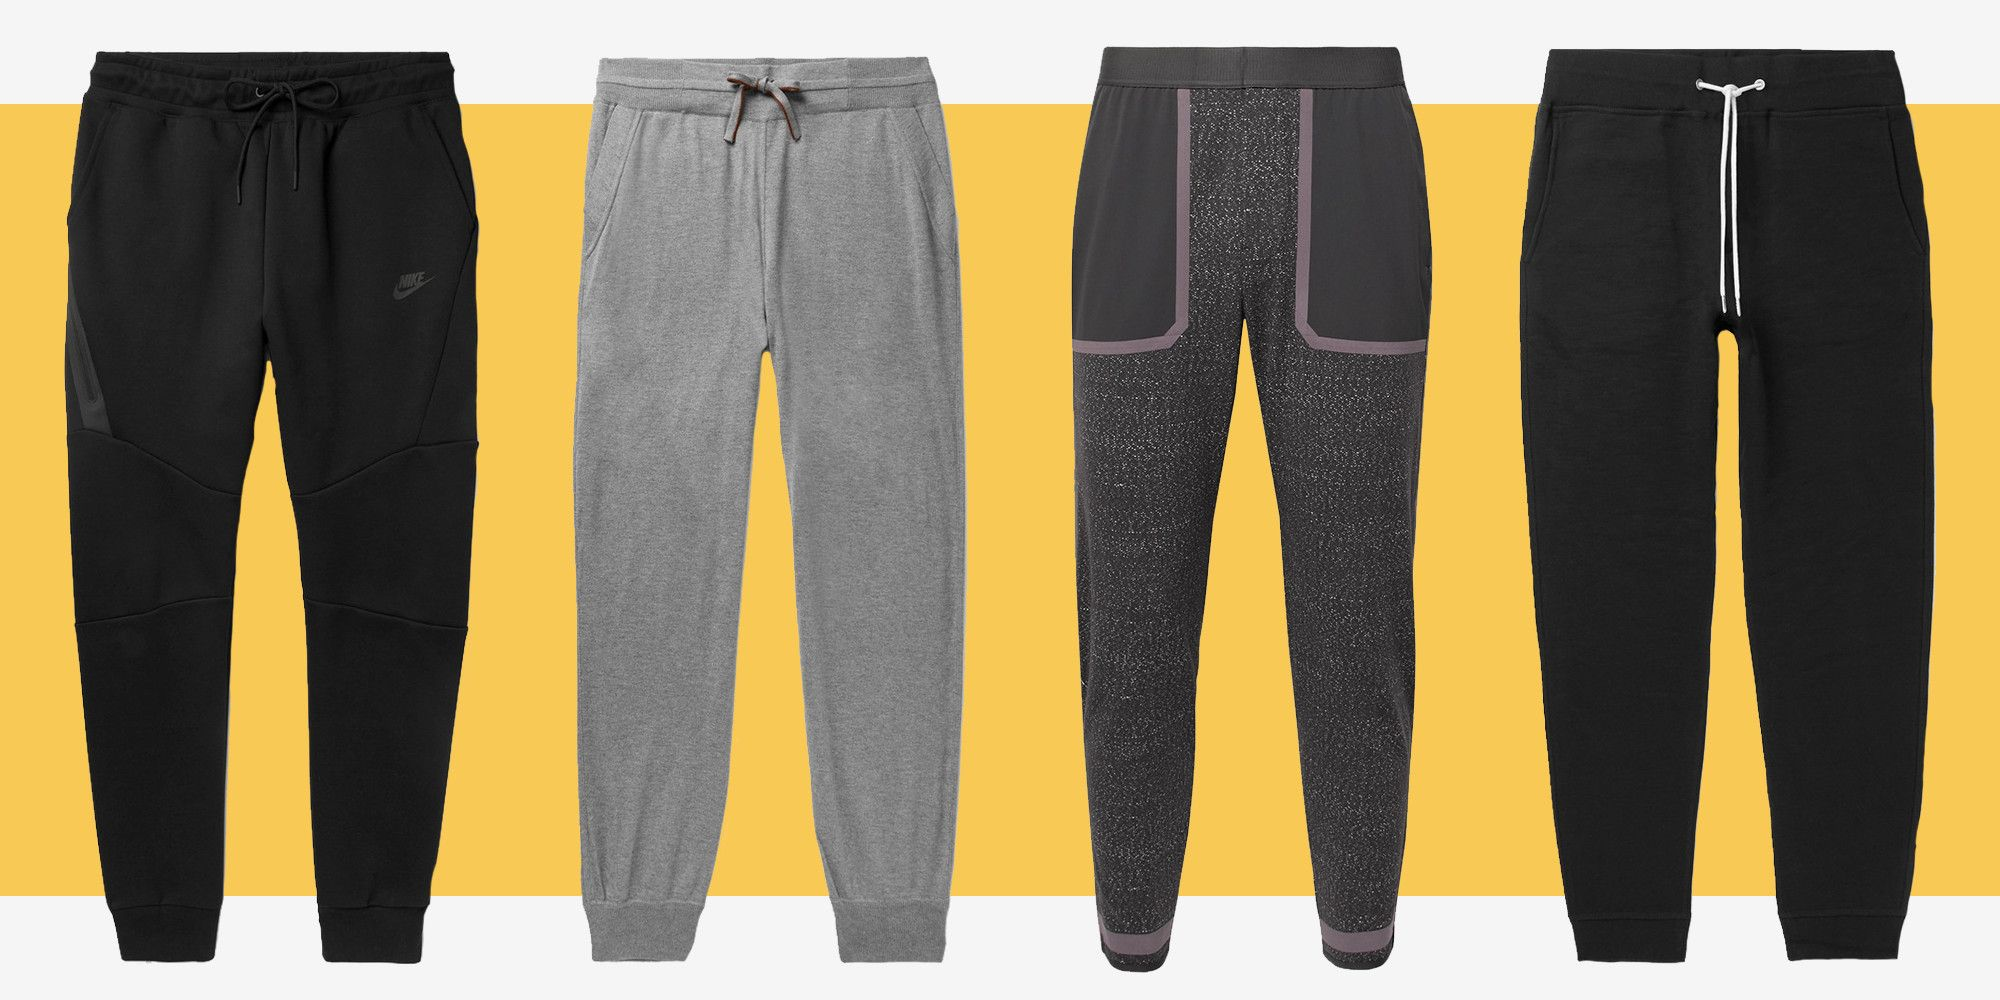 224b638efa585 15 Best Sweatpants for Men 2019